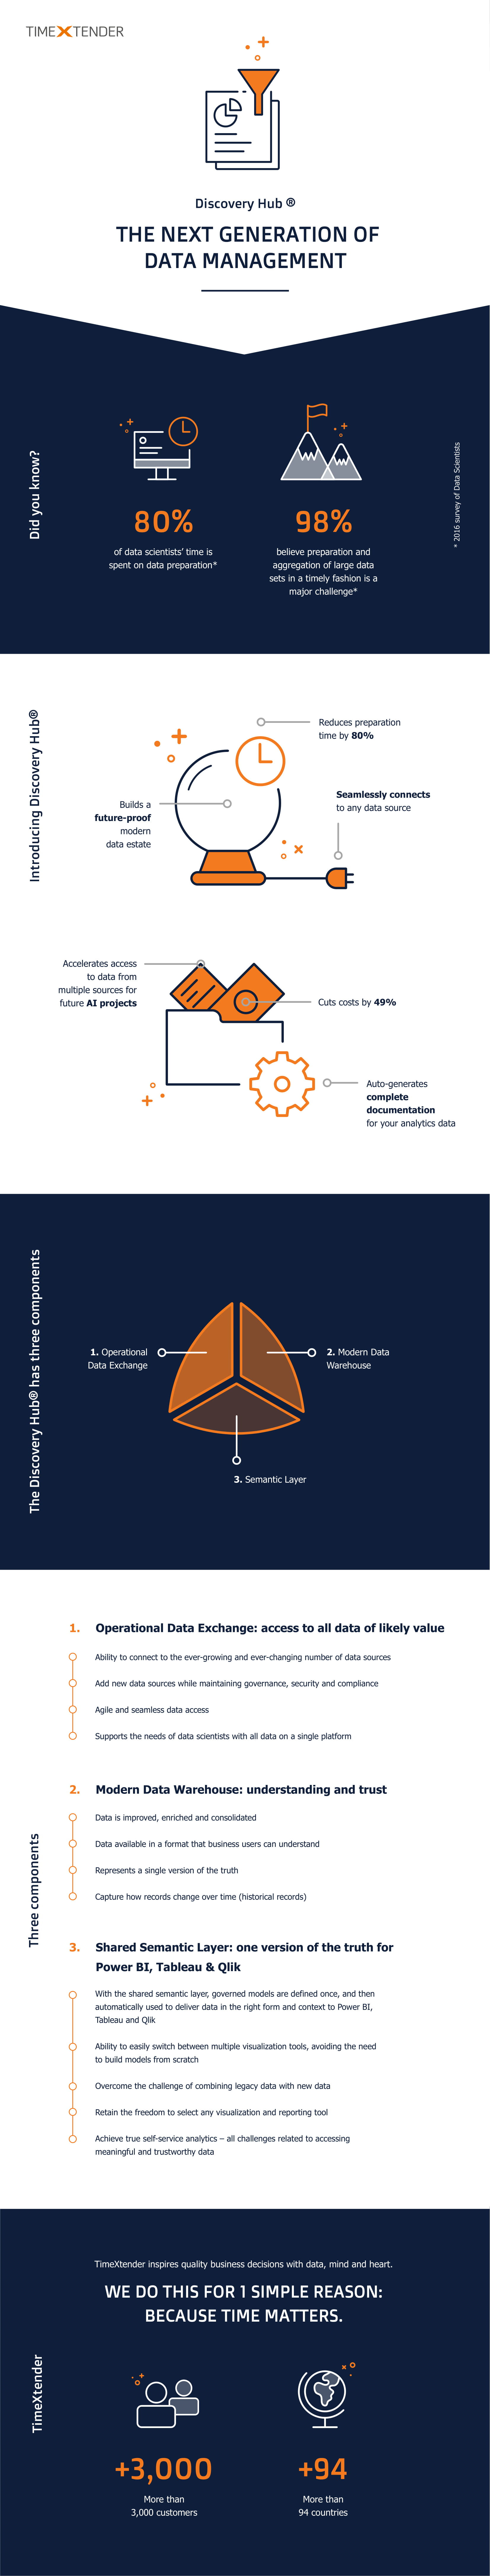 TimeXtender_Infographic_The-next-generation-of-data-management-V2 (1)-1